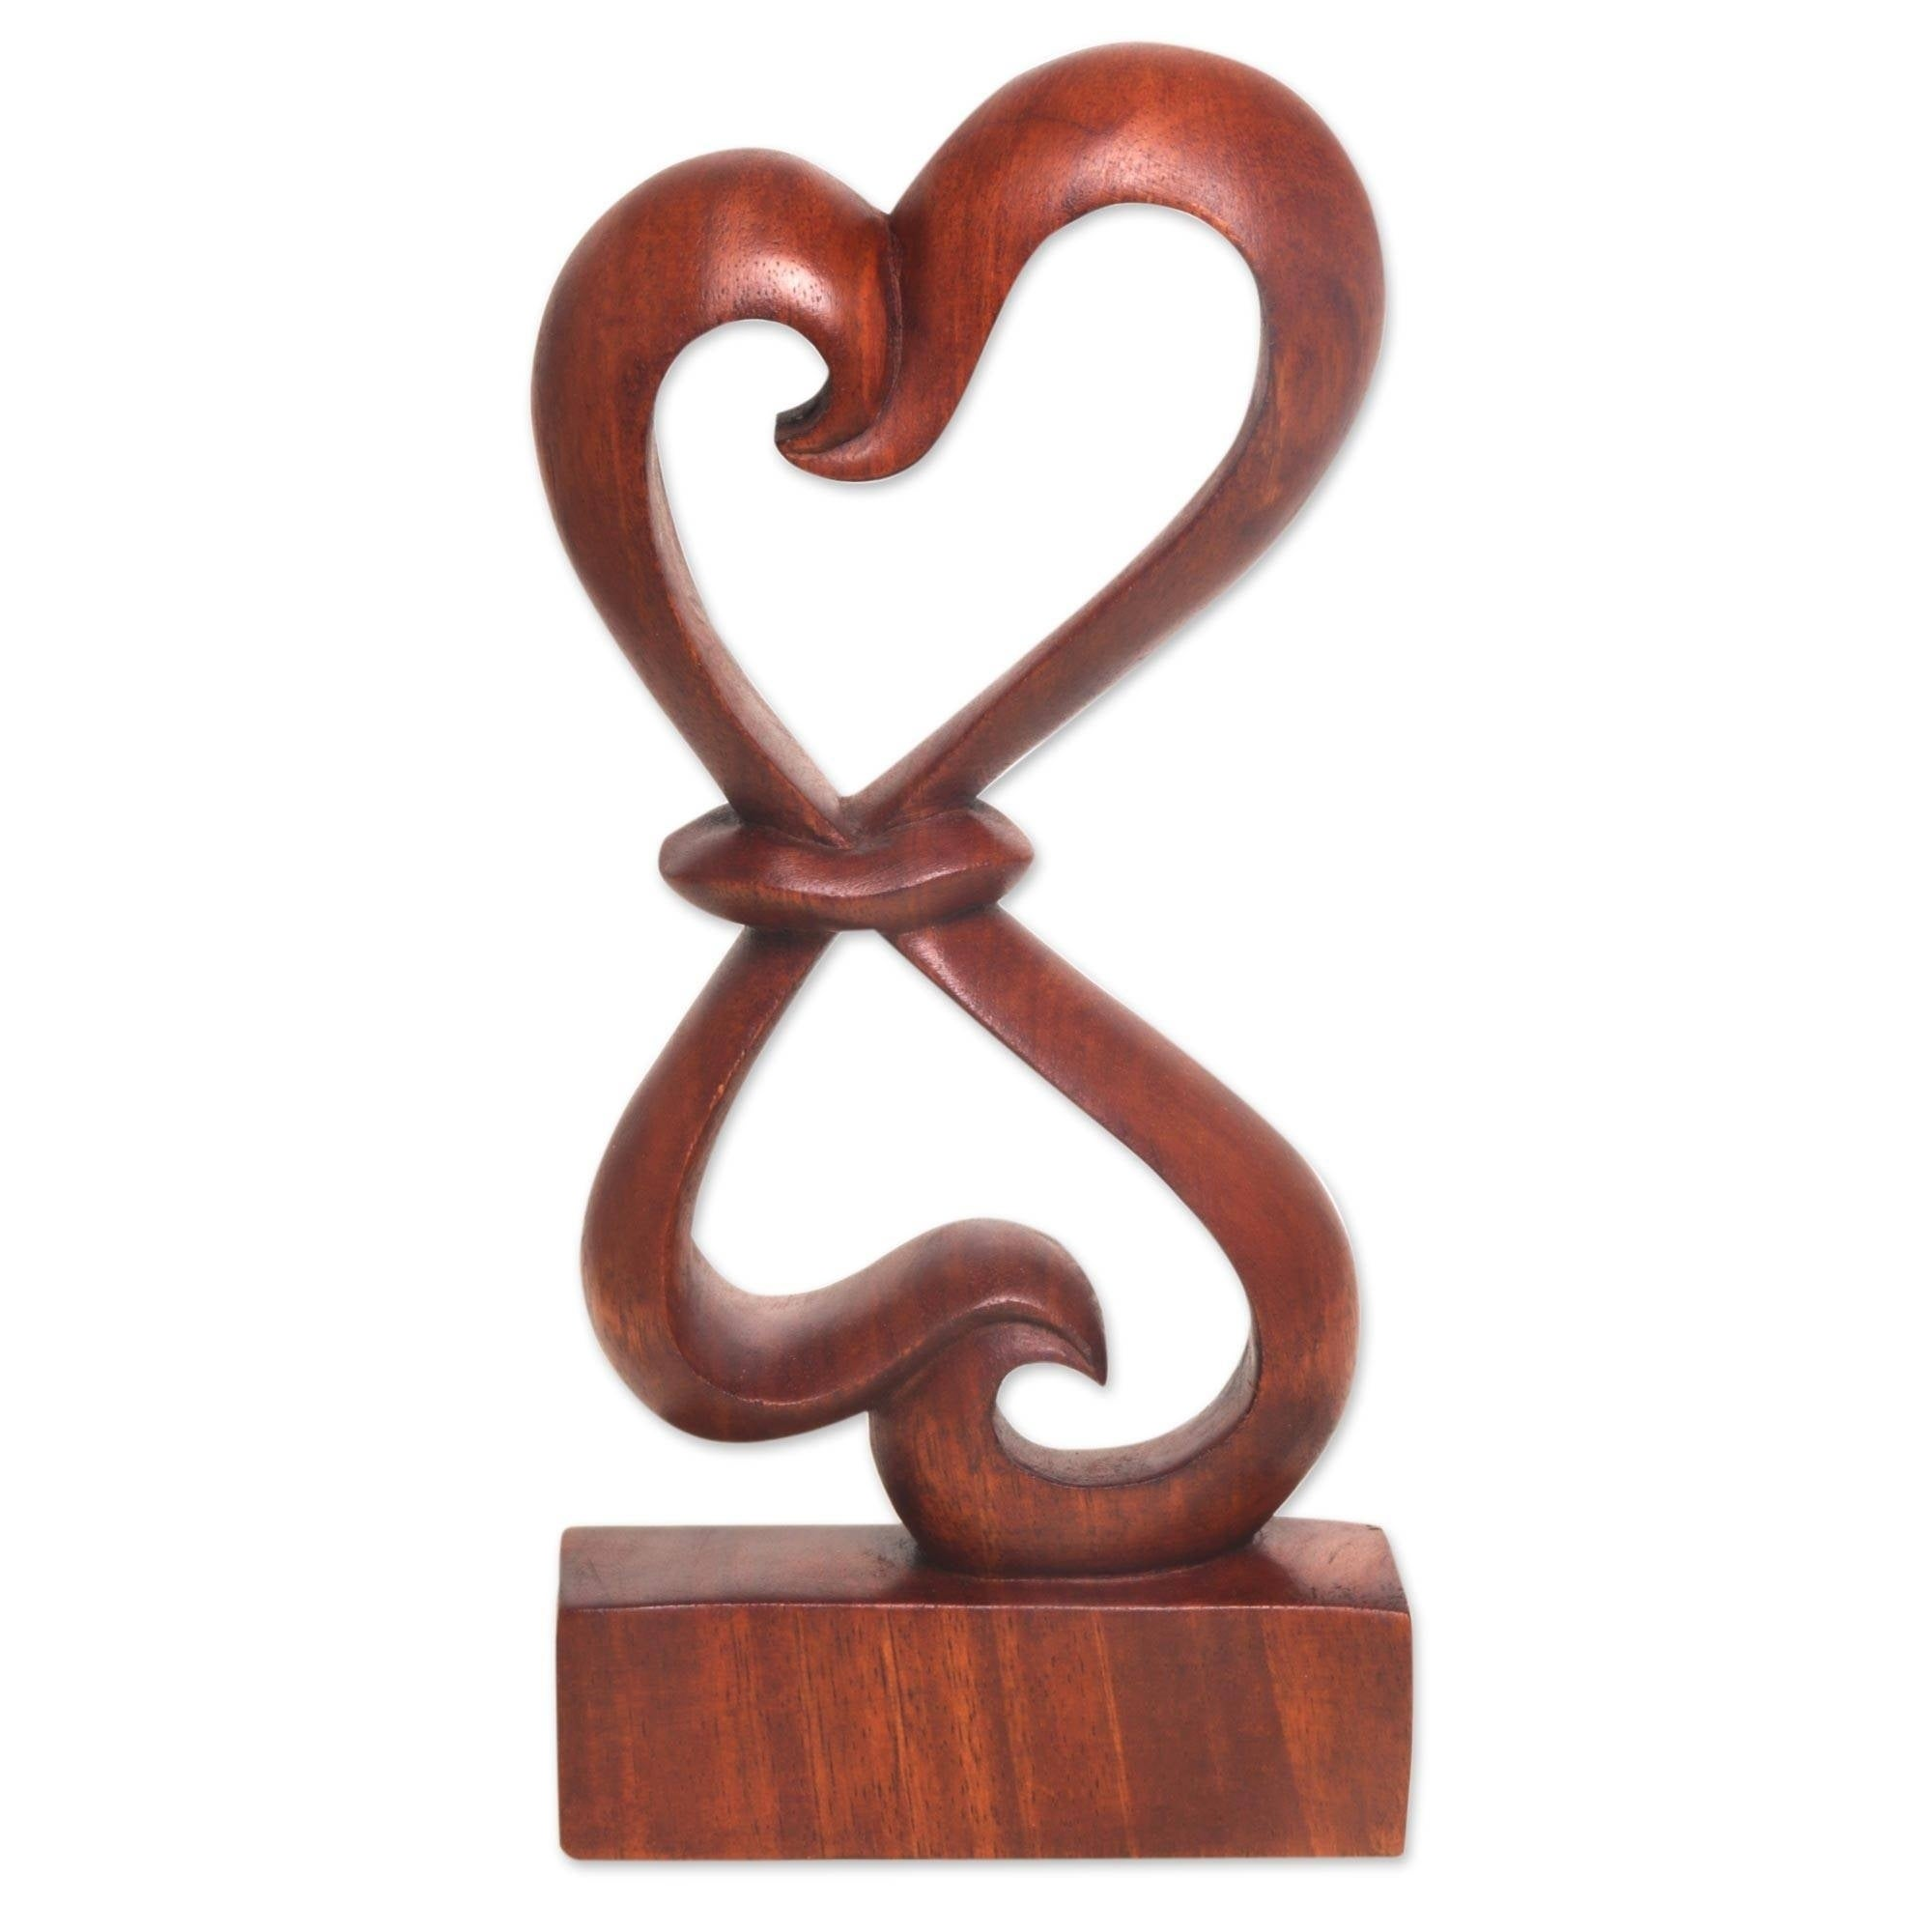 Handmade Wood Sculpture Heartfelt Indonesia Overstock 21420646